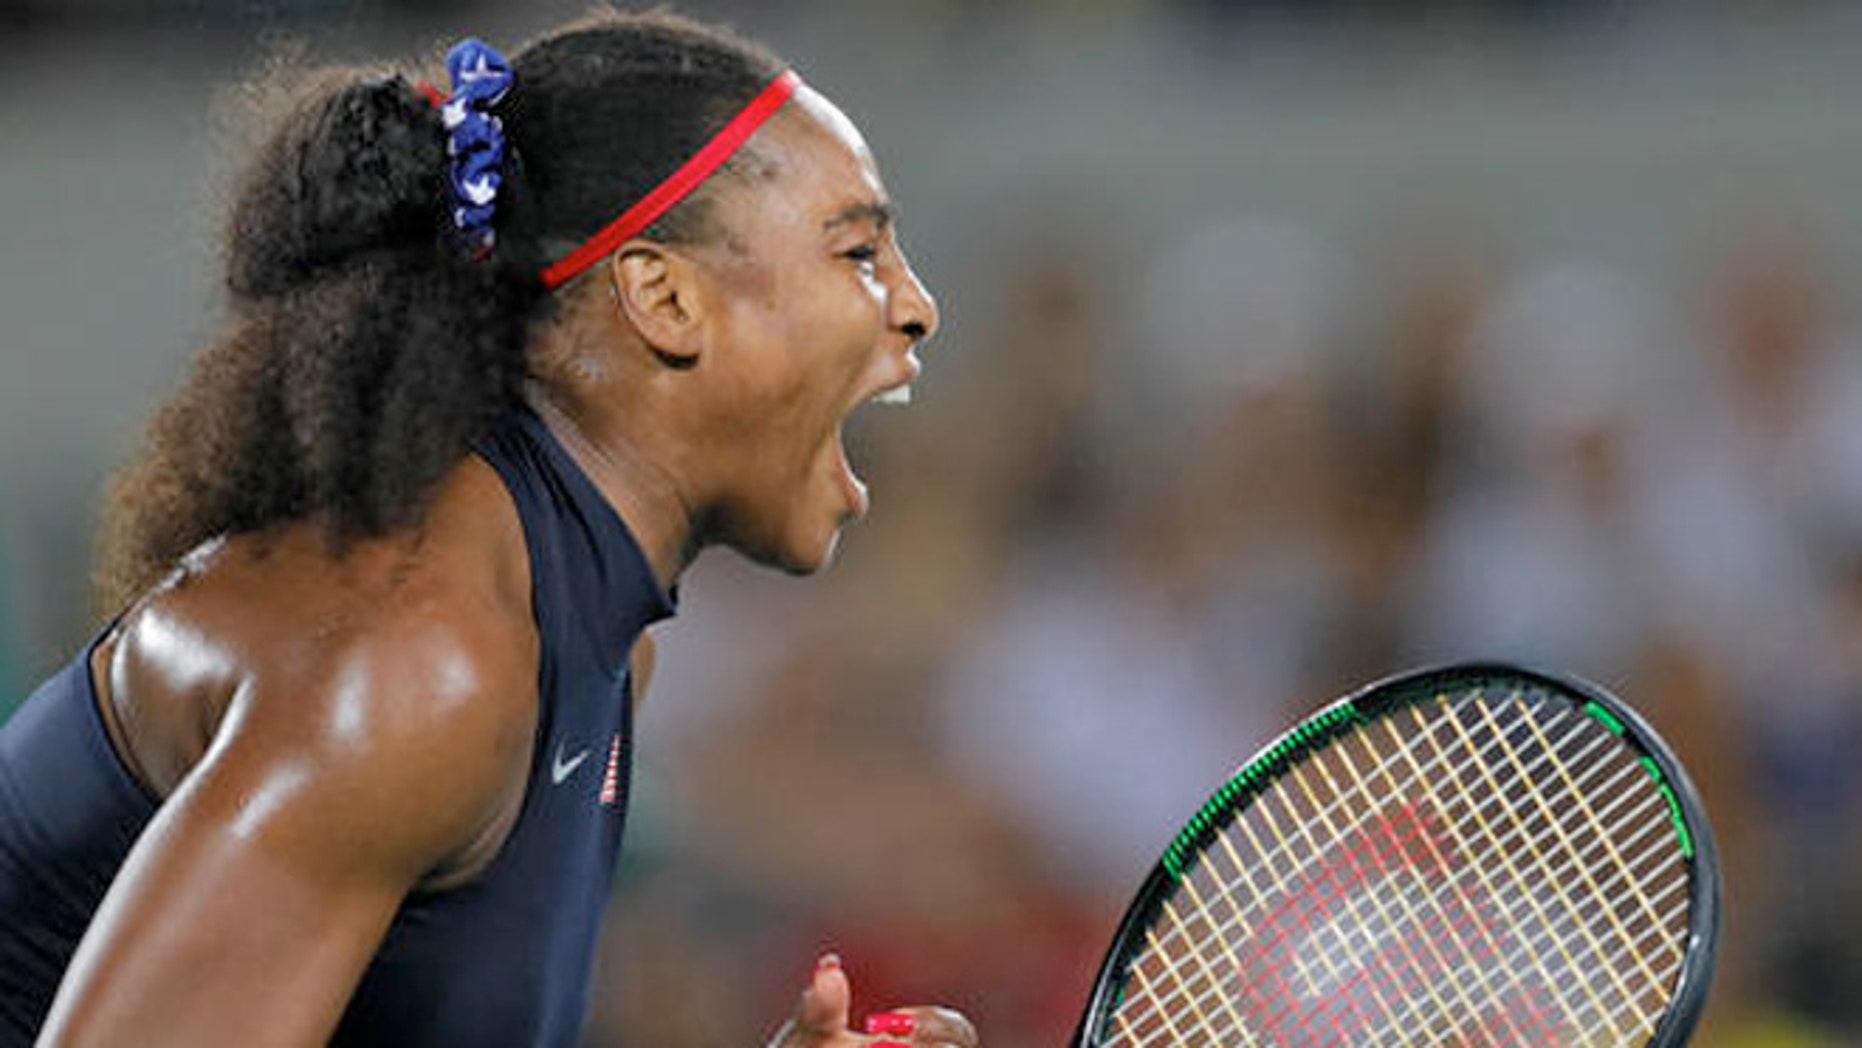 Serena Williams of the United States screams after winning a point in the match against France's Alize Cornet in the women's tennis competition at the 2016 Summer Olympics in Rio de Janeiro, Brazil, Monday, Aug. 8, 2016.